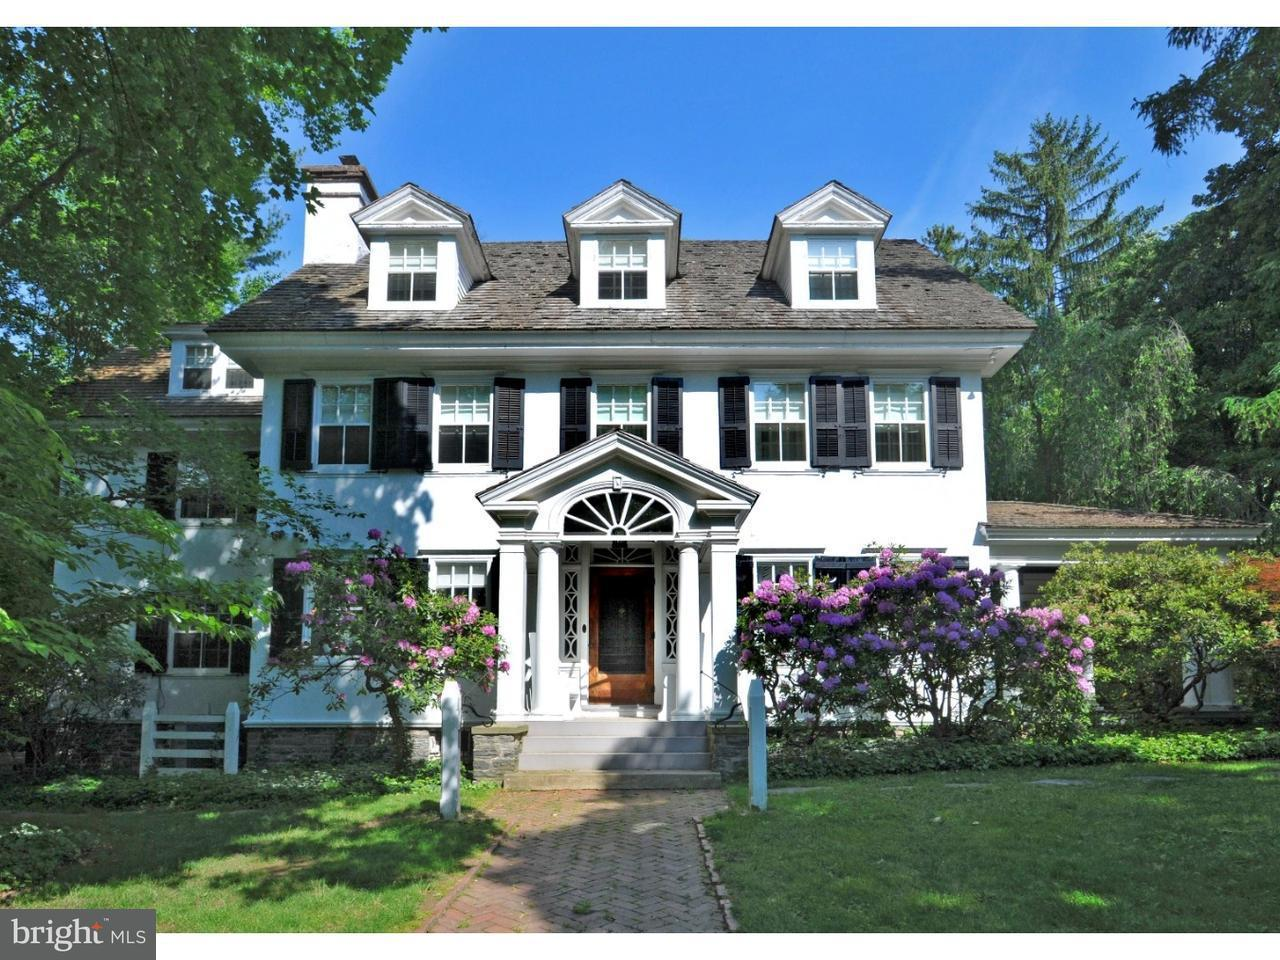 Single Family Home for Sale at 1138 SEWELL Lane Rydal, Pennsylvania 19046 United States